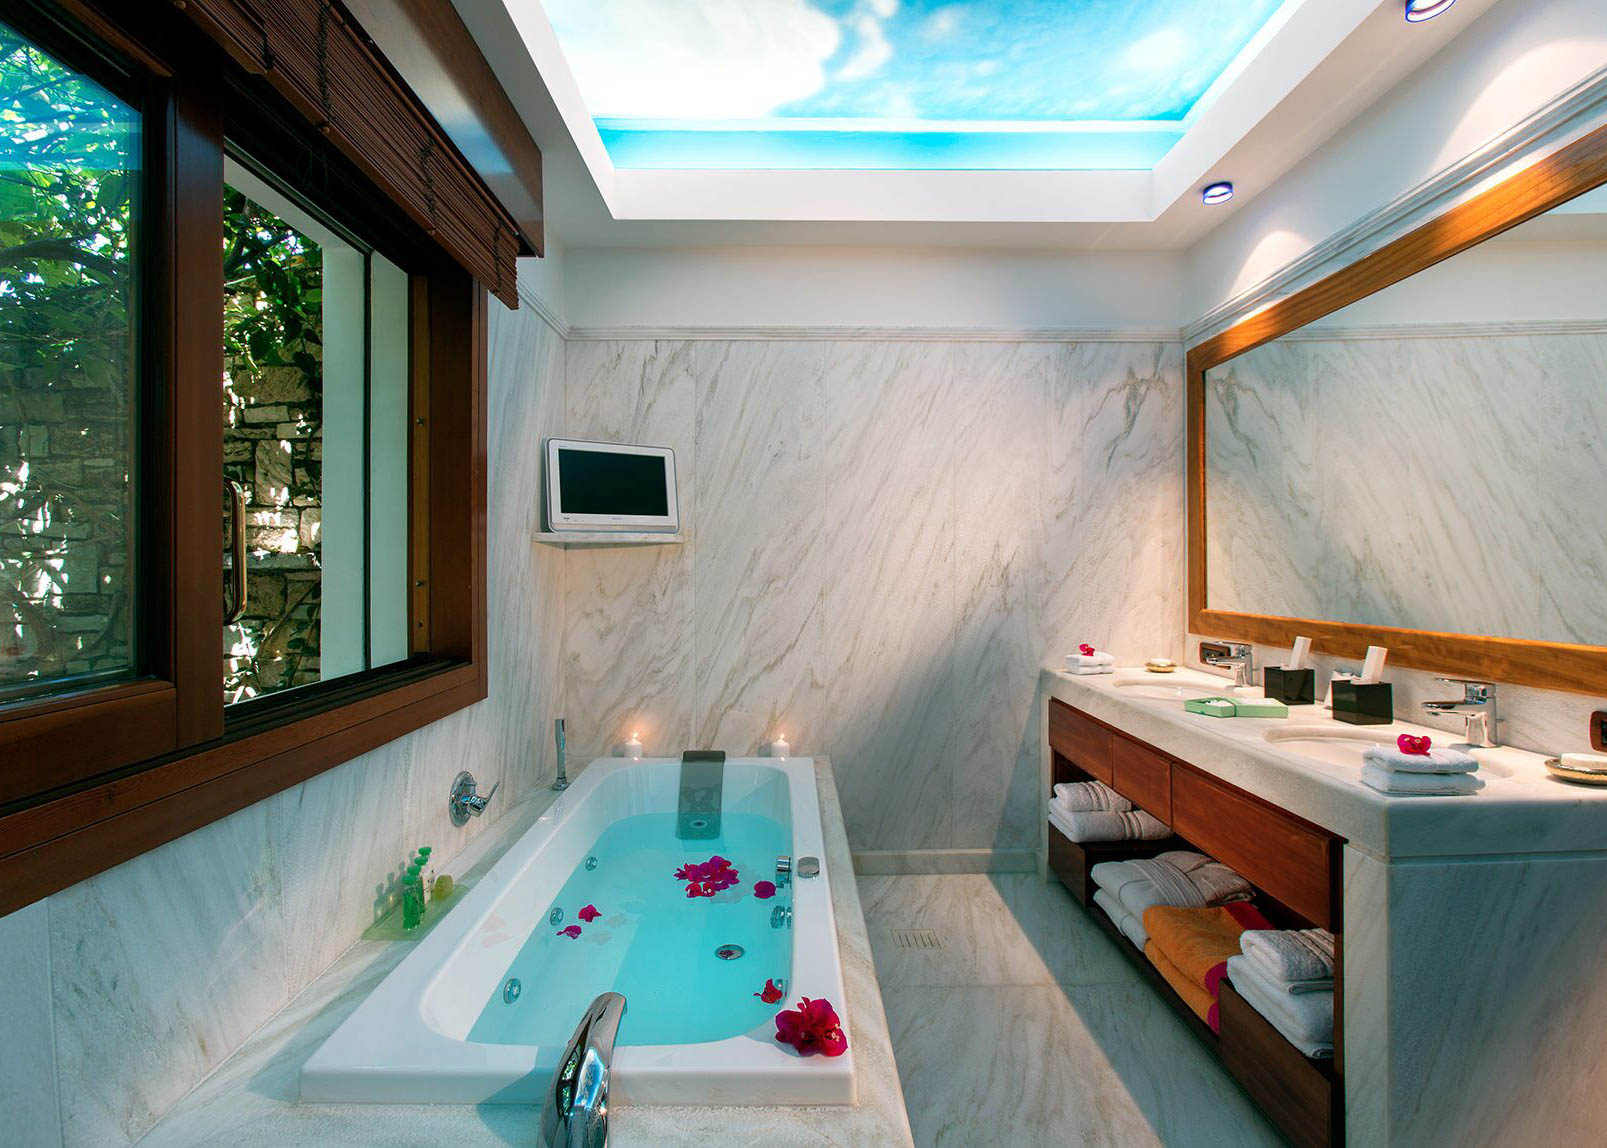 Presidential spa villa bathroom